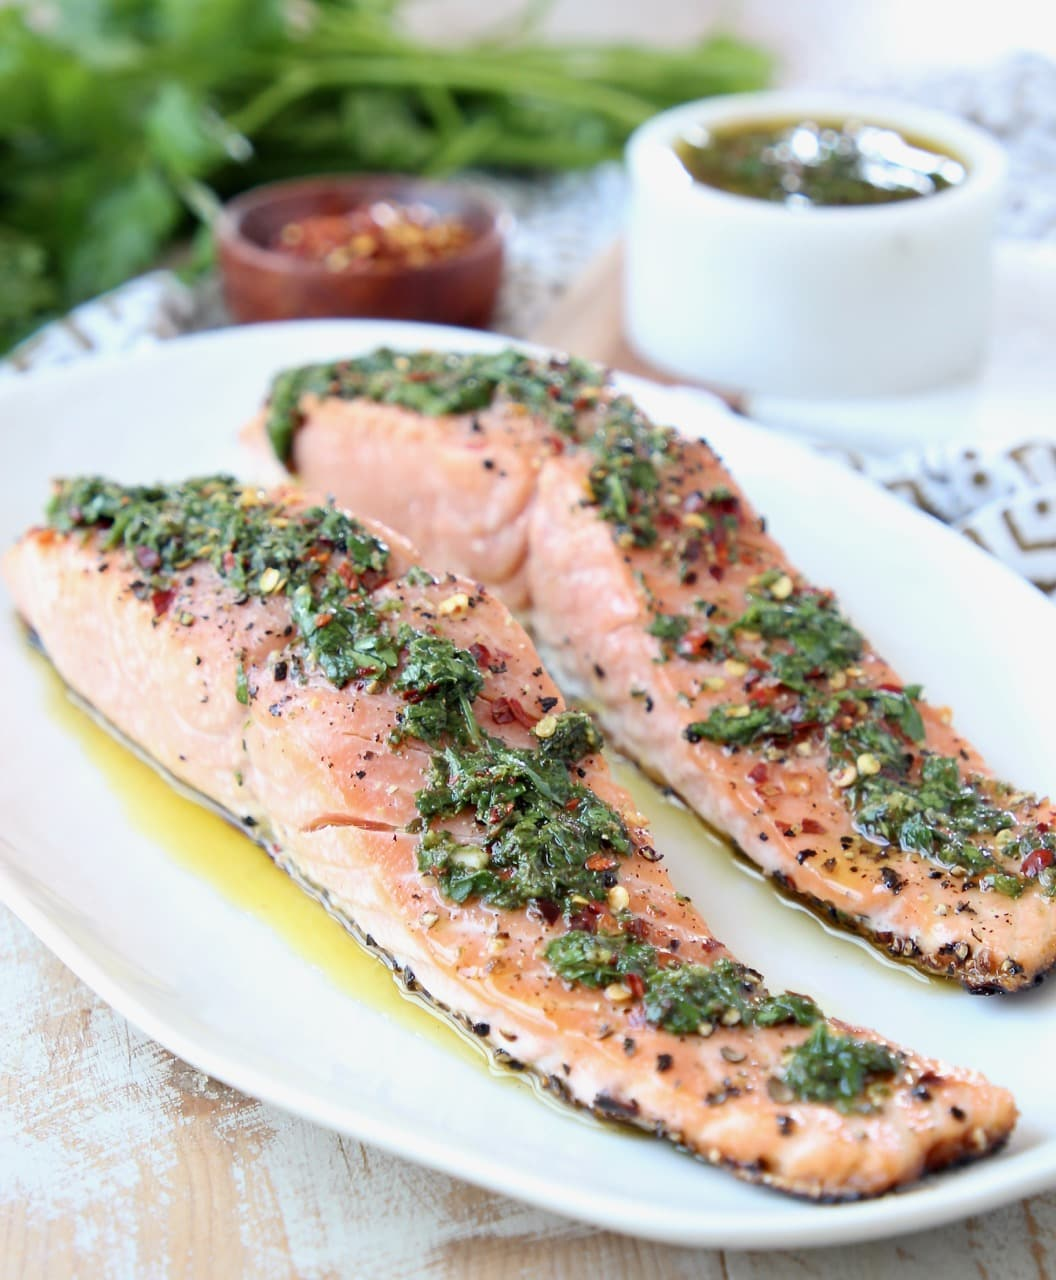 Two filets of grilled salmon on a white plate topped with chimichurri sauce